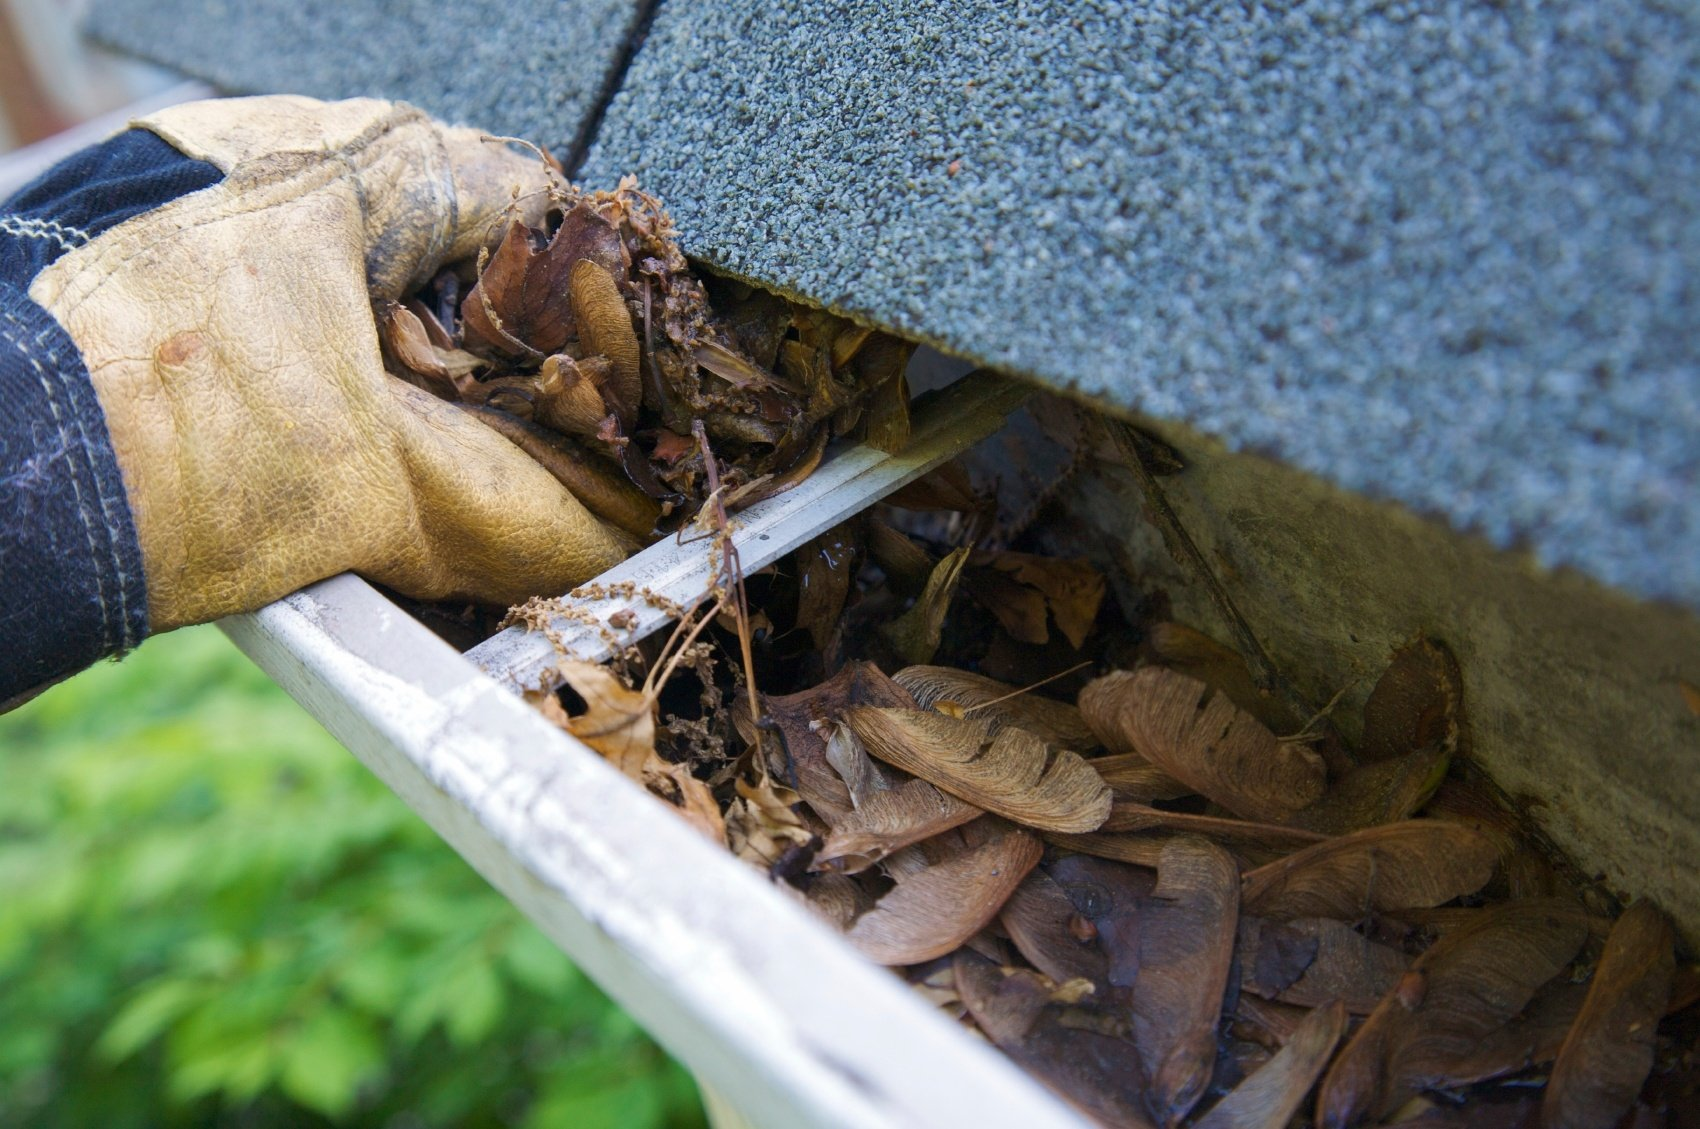 cleaning-out-gutters-2032-gutter-downspout-cleaning-1700-x-1129.jpg